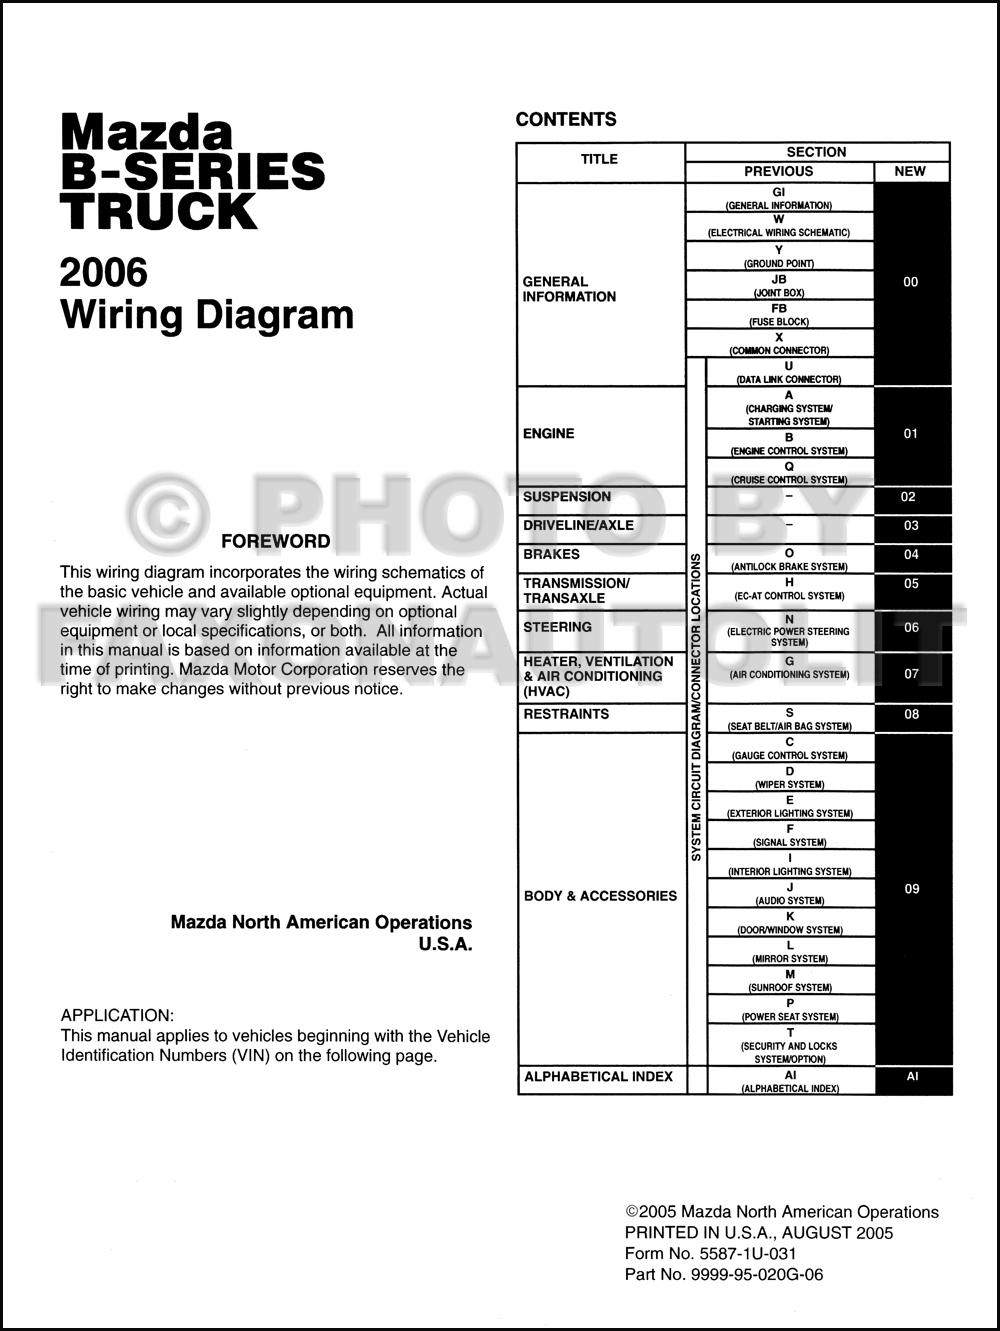 mazda truck wiring diagrams 2006 mazda b-series pickup truck wiring diagram manual ... mazda miata wiring diagrams #4